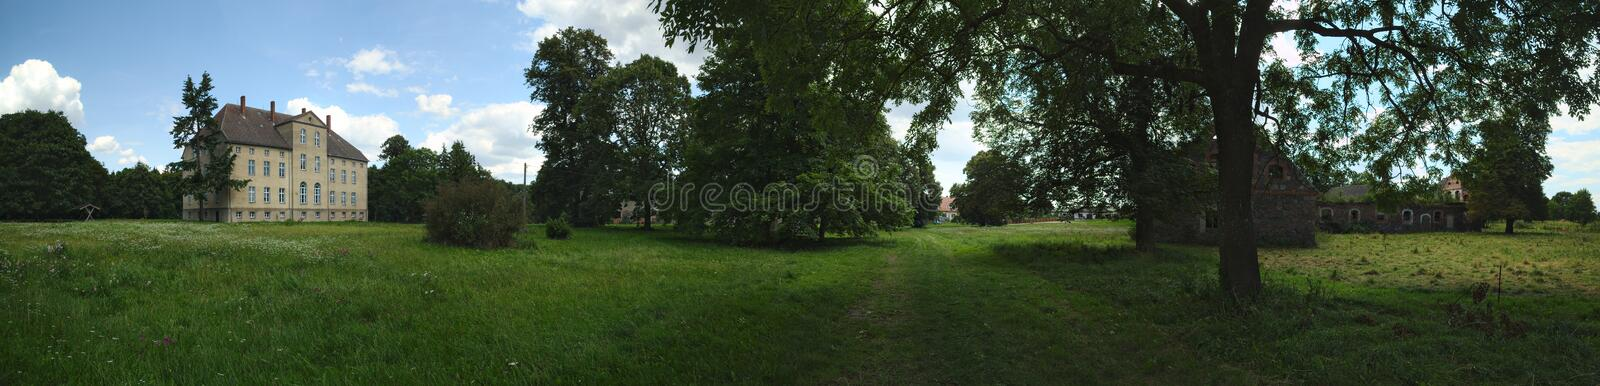 Download Manor House, Listed As Monument In Alt Plestlin, Mecklenburg-Vorpommern, Germany Stock Photo - Image of gray, grey: 98587850